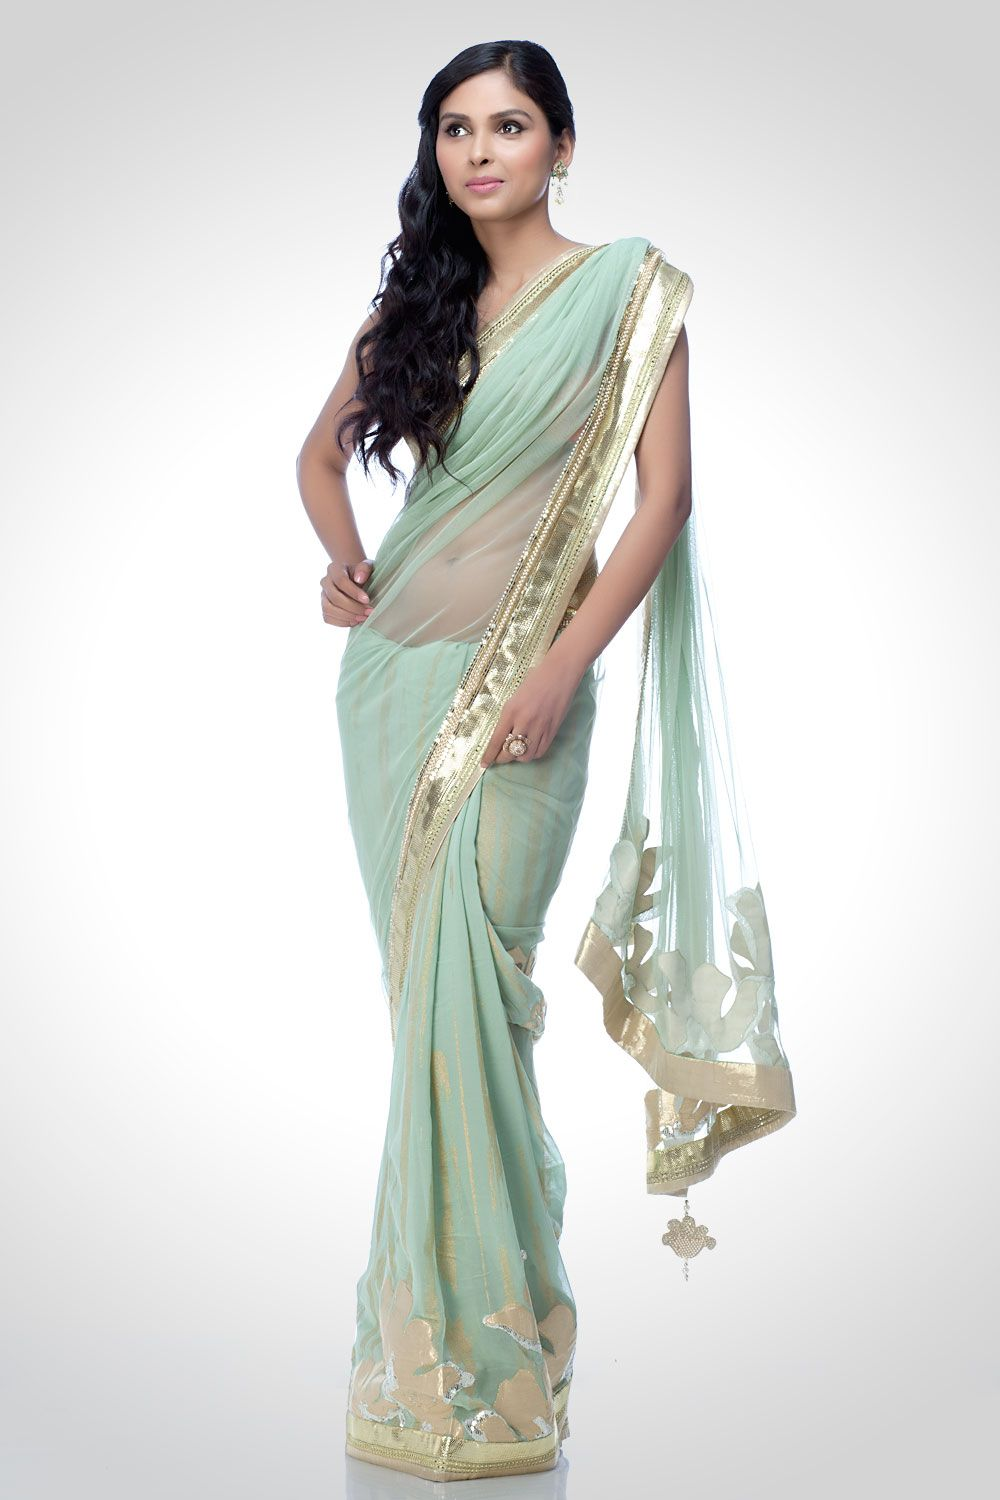 best images about sarees pistachio green 17 best images about sarees pistachio green samantha ruth and bridal lehenga